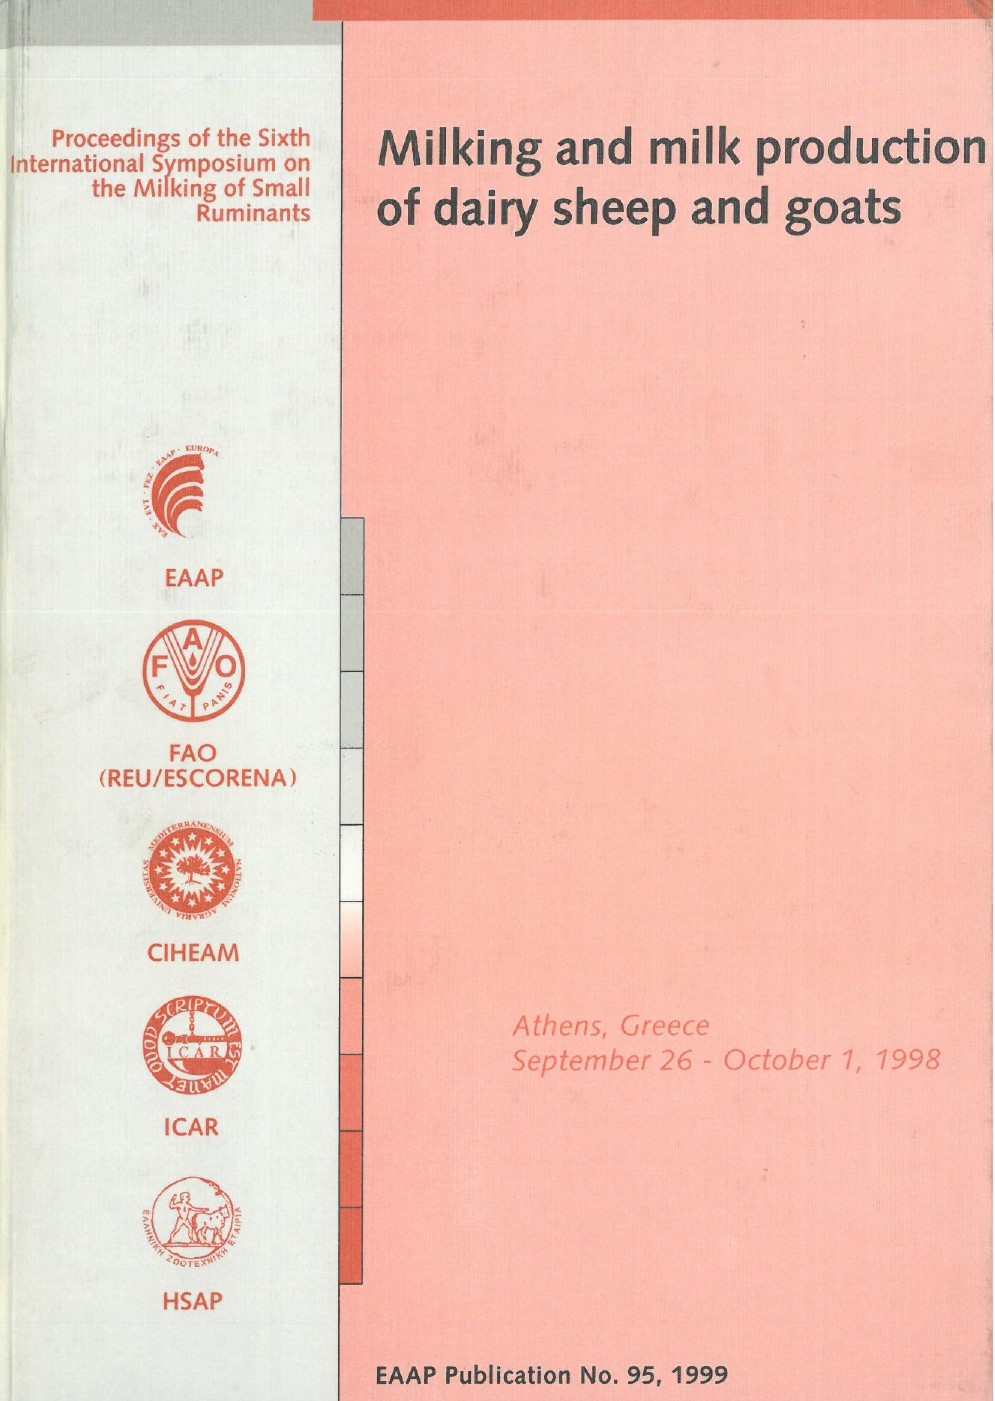 Milking and milk production of dairy sheep and goats